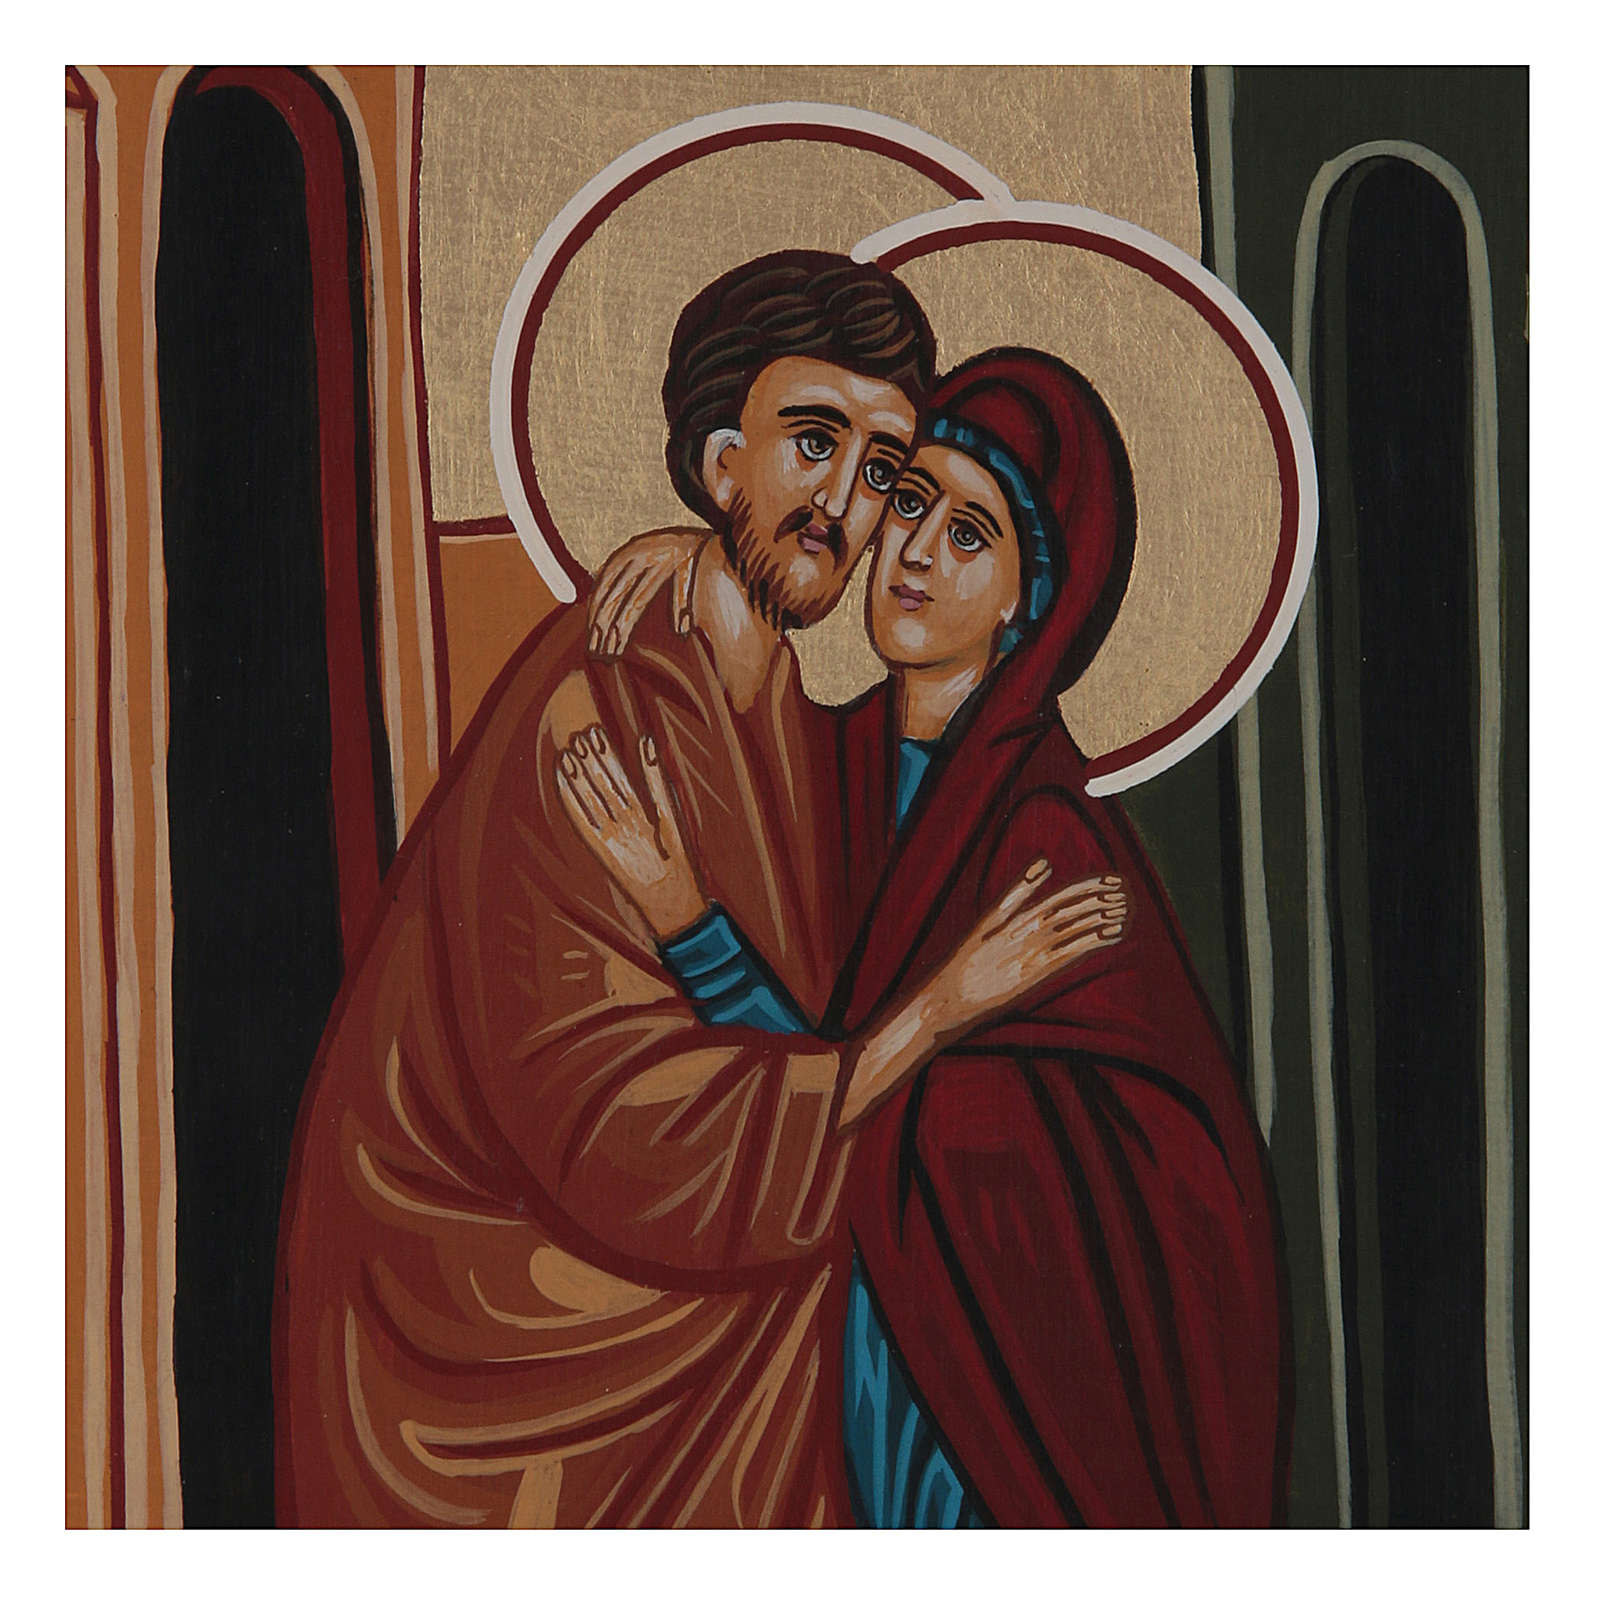 The wedding of Saint Anne and Saint Joachim 4